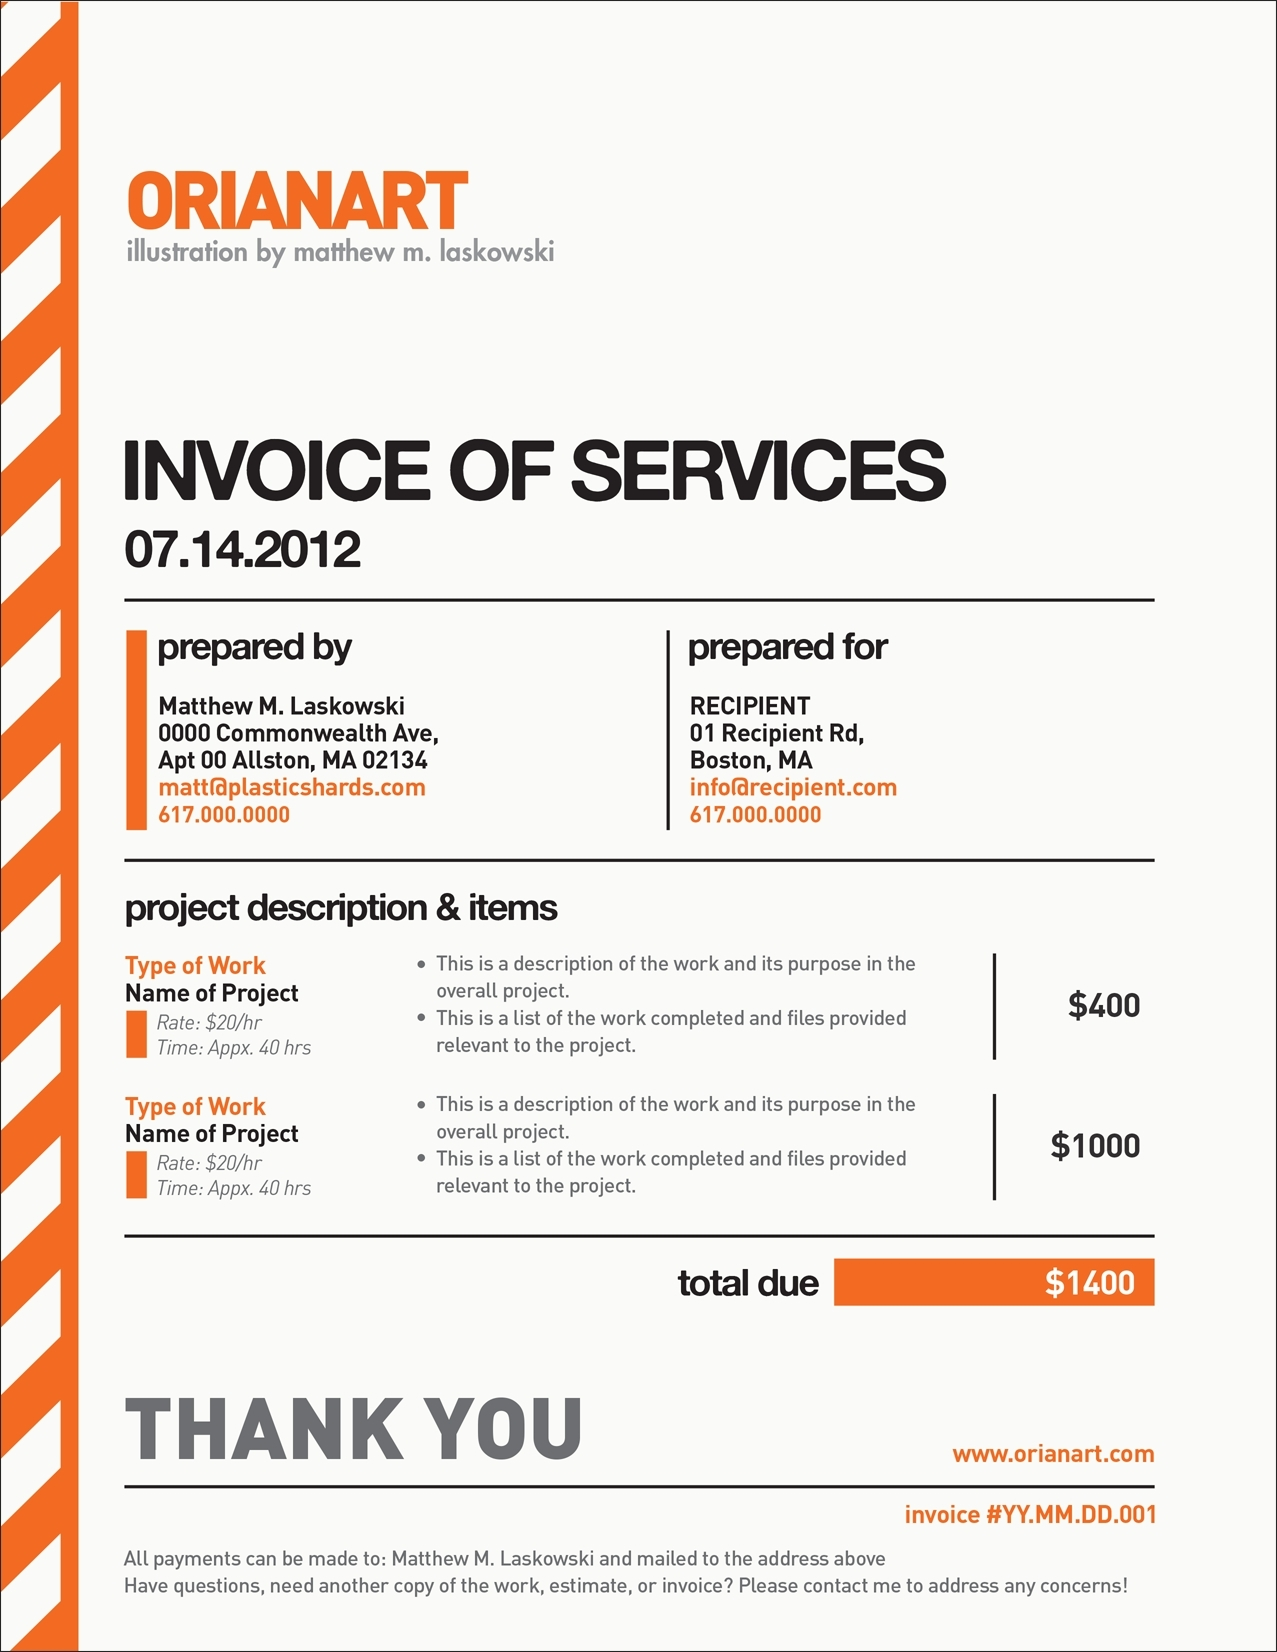 cool invoice template * invoice template ideas, Invoice templates